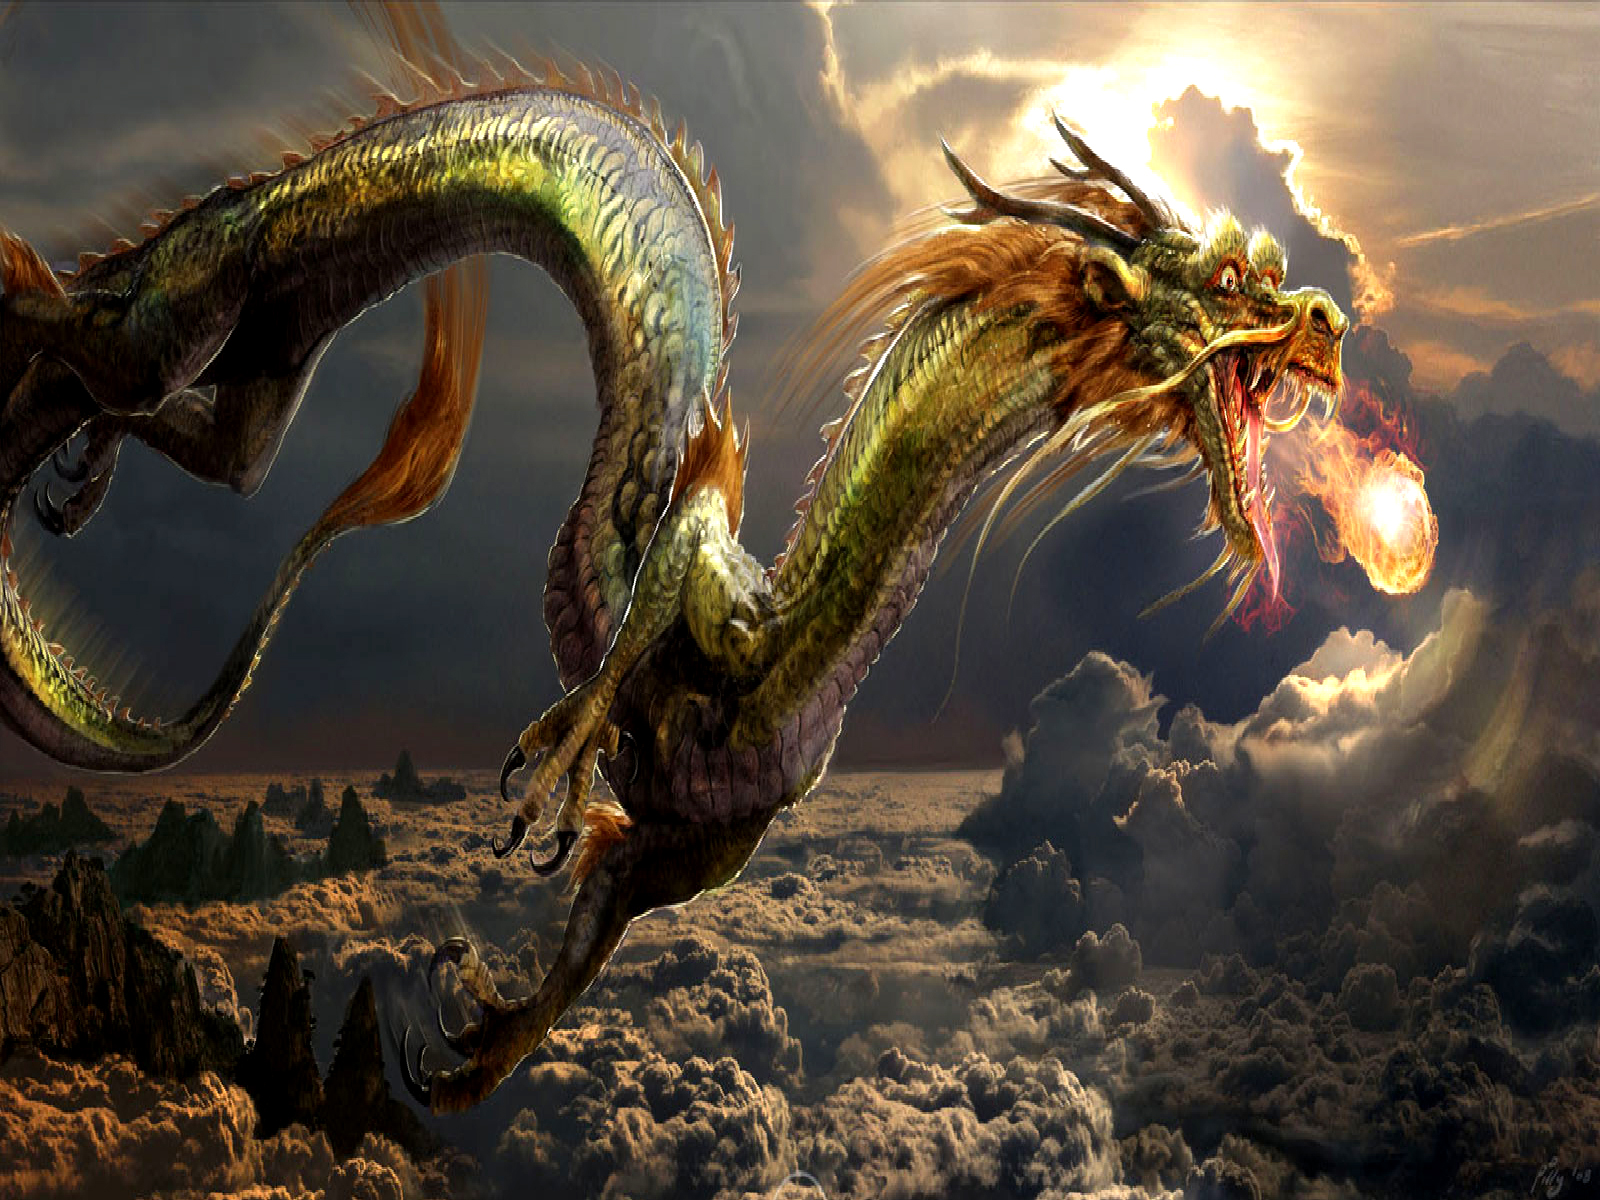 Dragon Hd Wallpapers Desktop Backgrounds High Quality All Hd